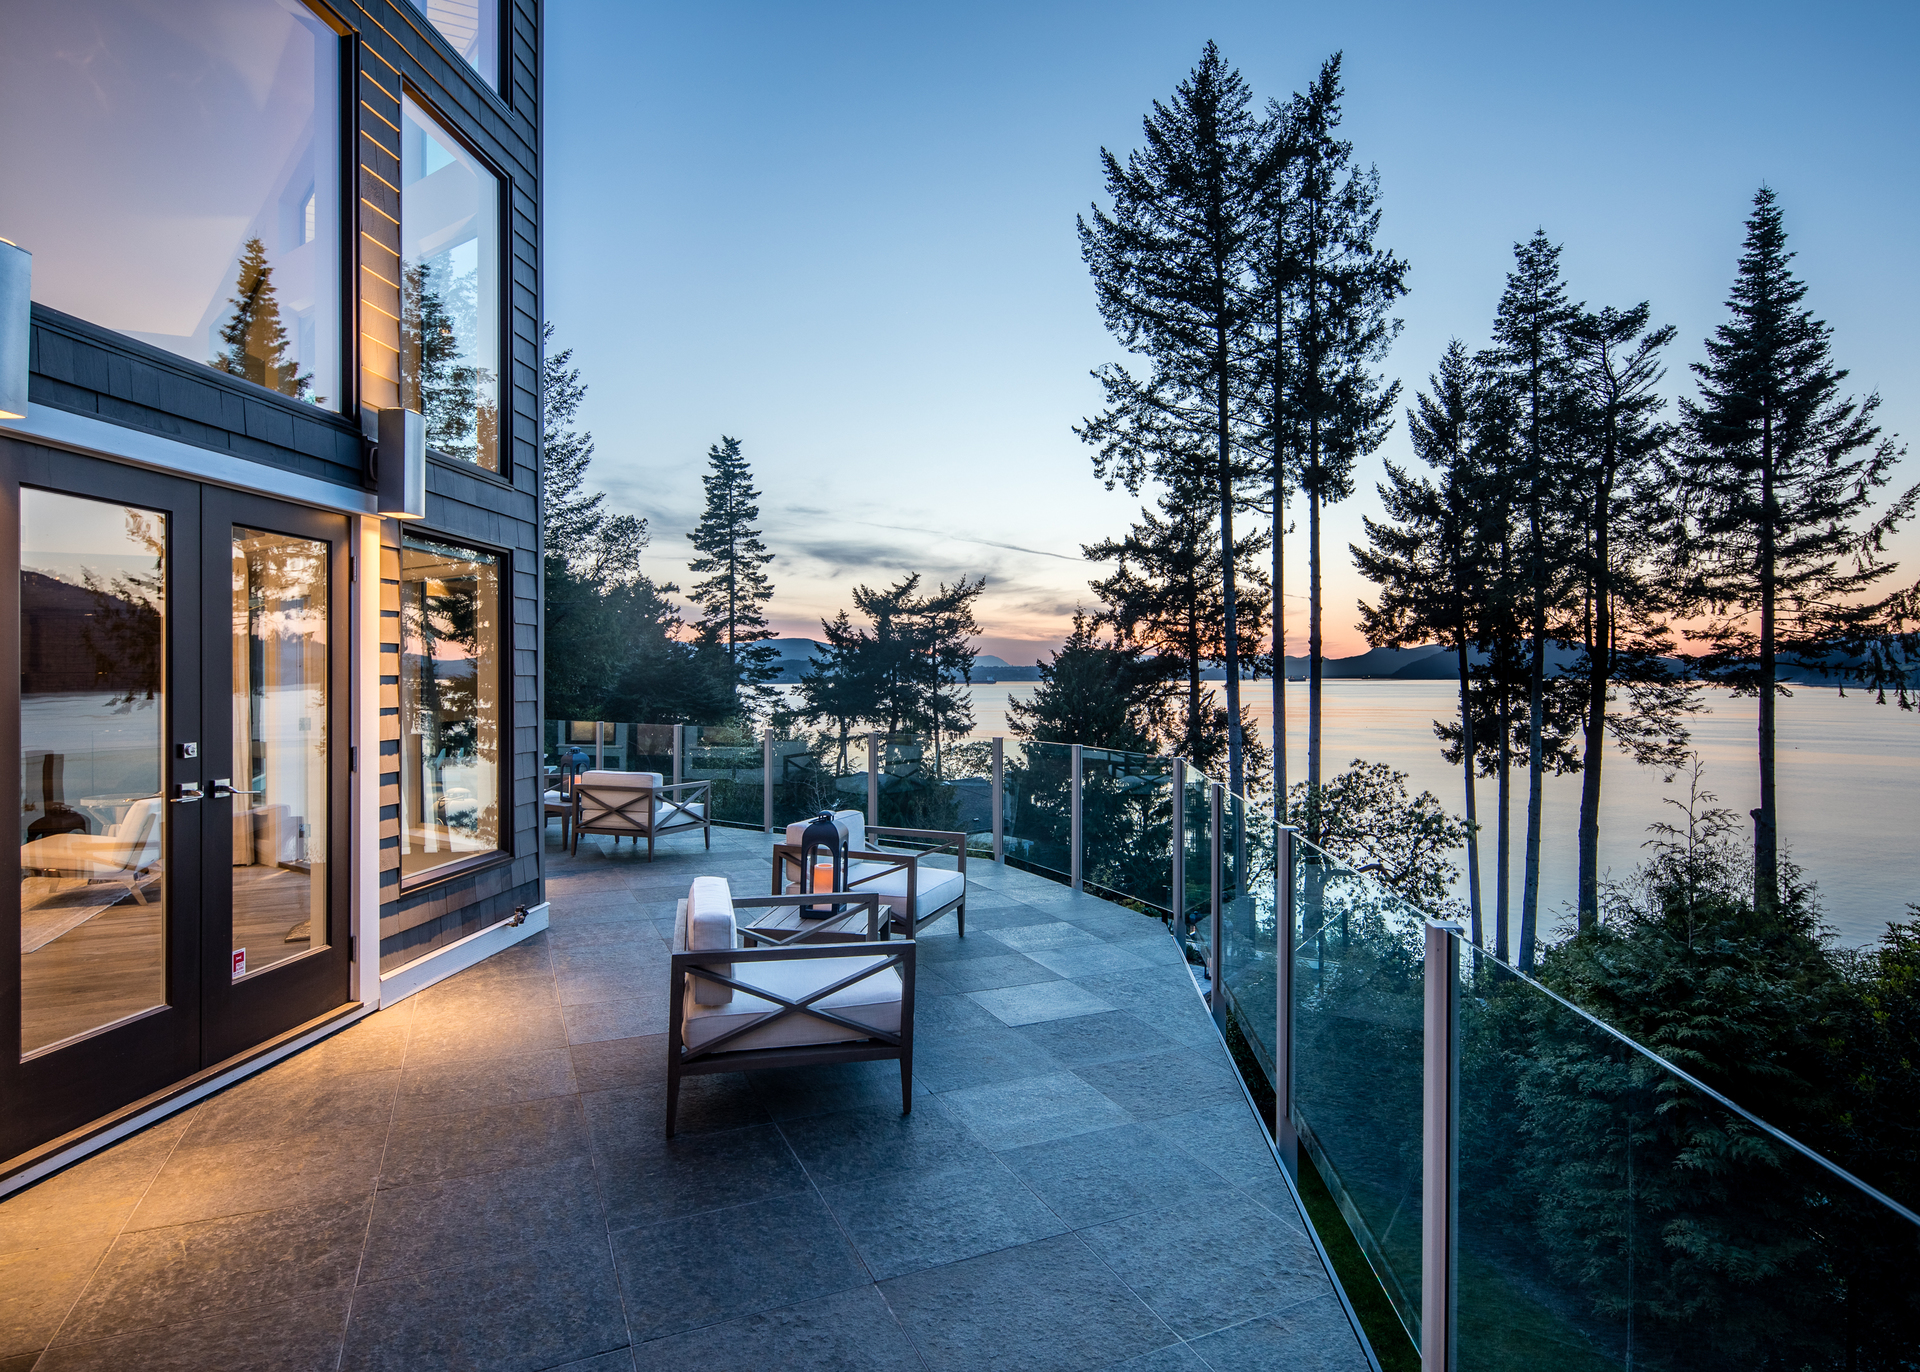 Sunset Deck Views at 518 North Lands End Road, Saanich Saanich, Vancouver Island